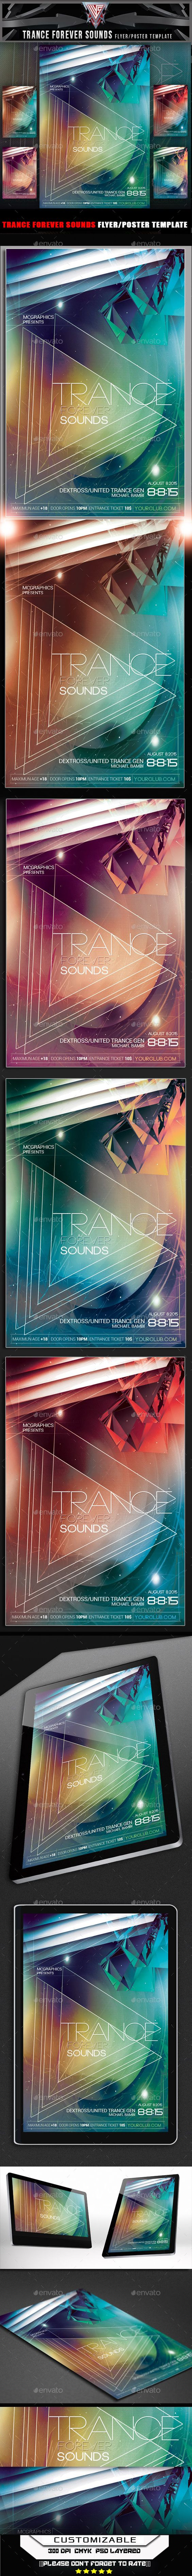 PSD  Trance Forever Sounds Flyer Template • Click here to download ! http://graphicriver.net/item/trance-forever-sounds-flyer-template/11713994?ref=pxcr